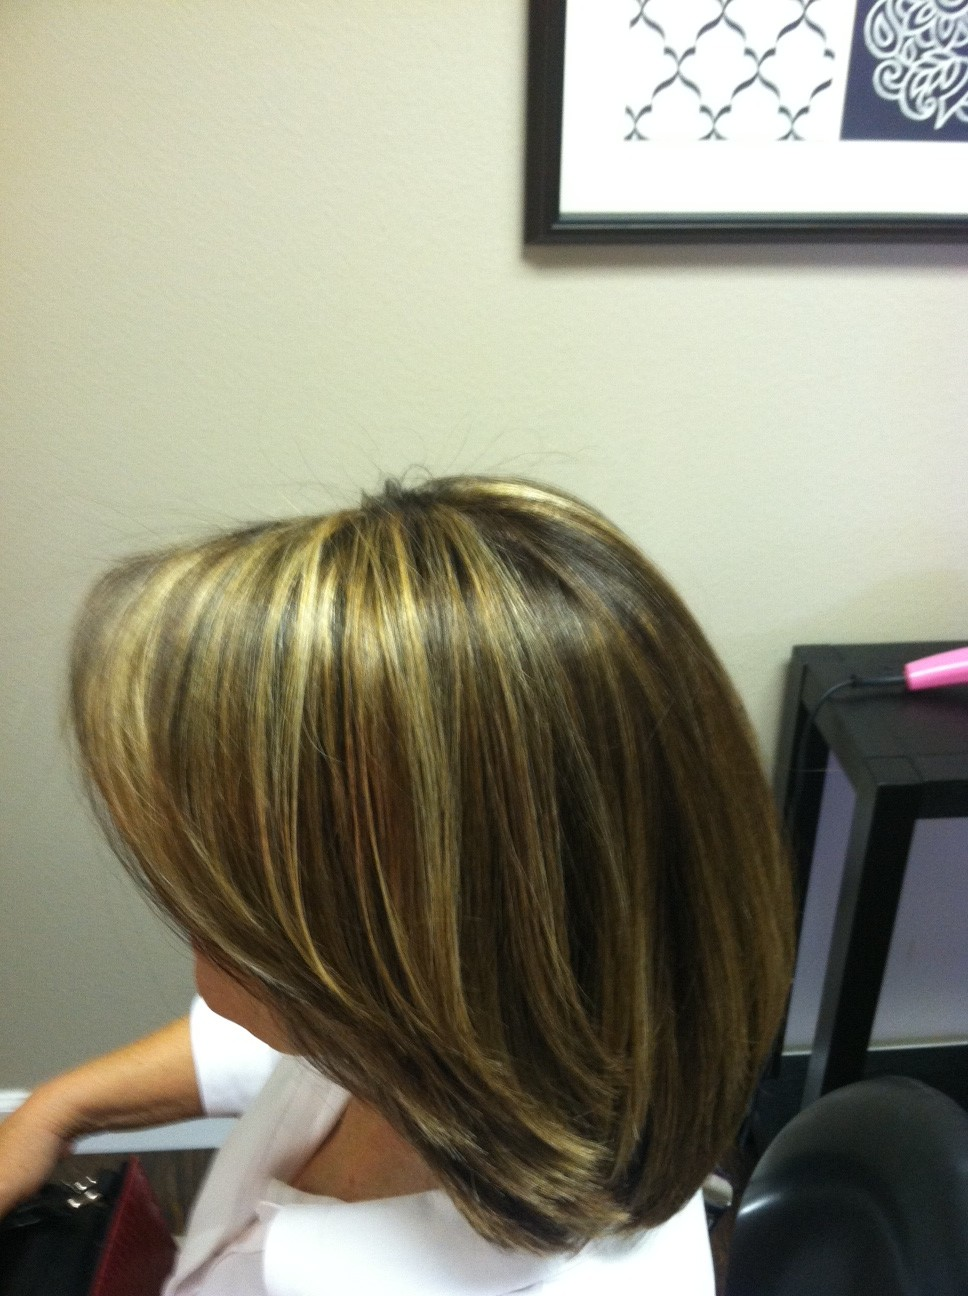 5 Things You Need To Know About The Babylights Hair Color Trend Modern Salon